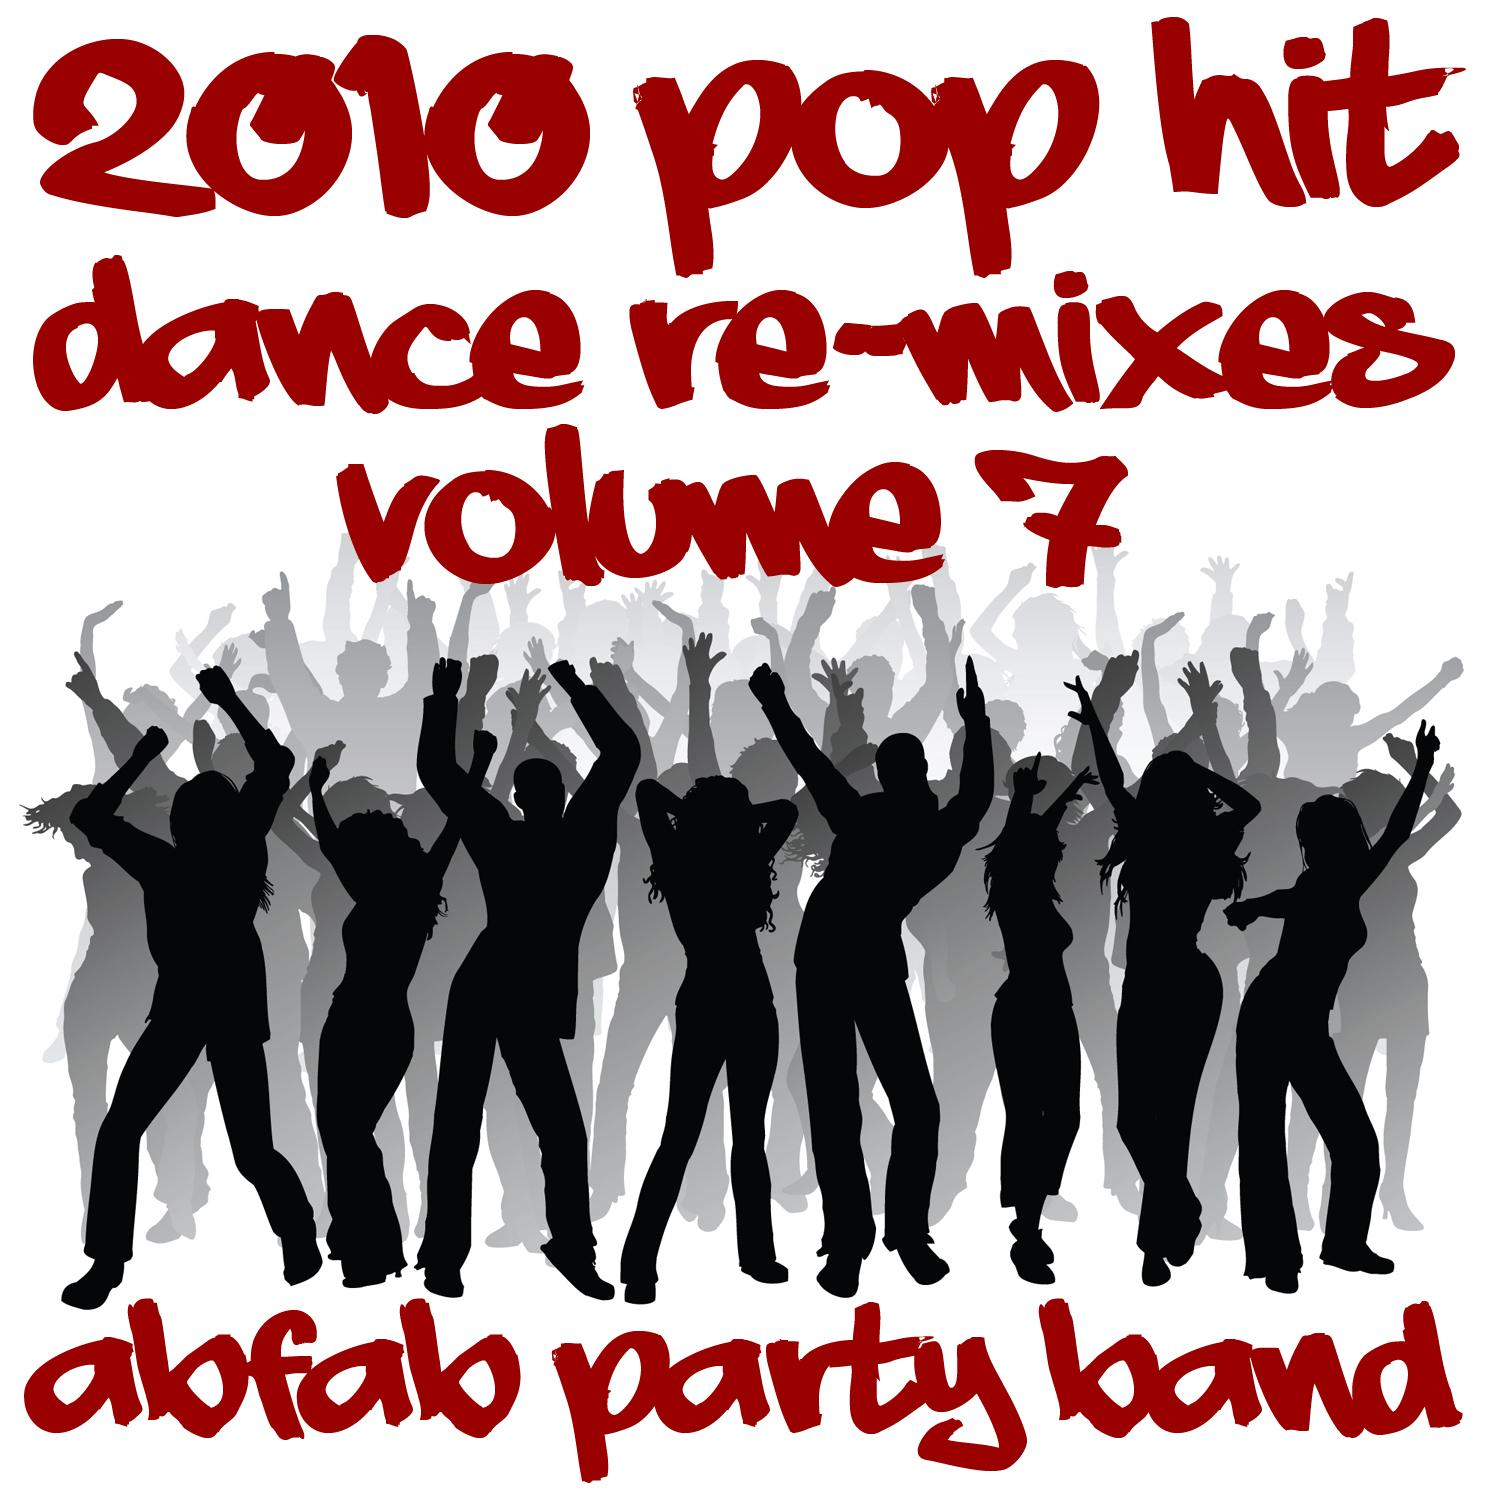 2010 Pop Hit Dance Re-Mixes (Vol. 7)